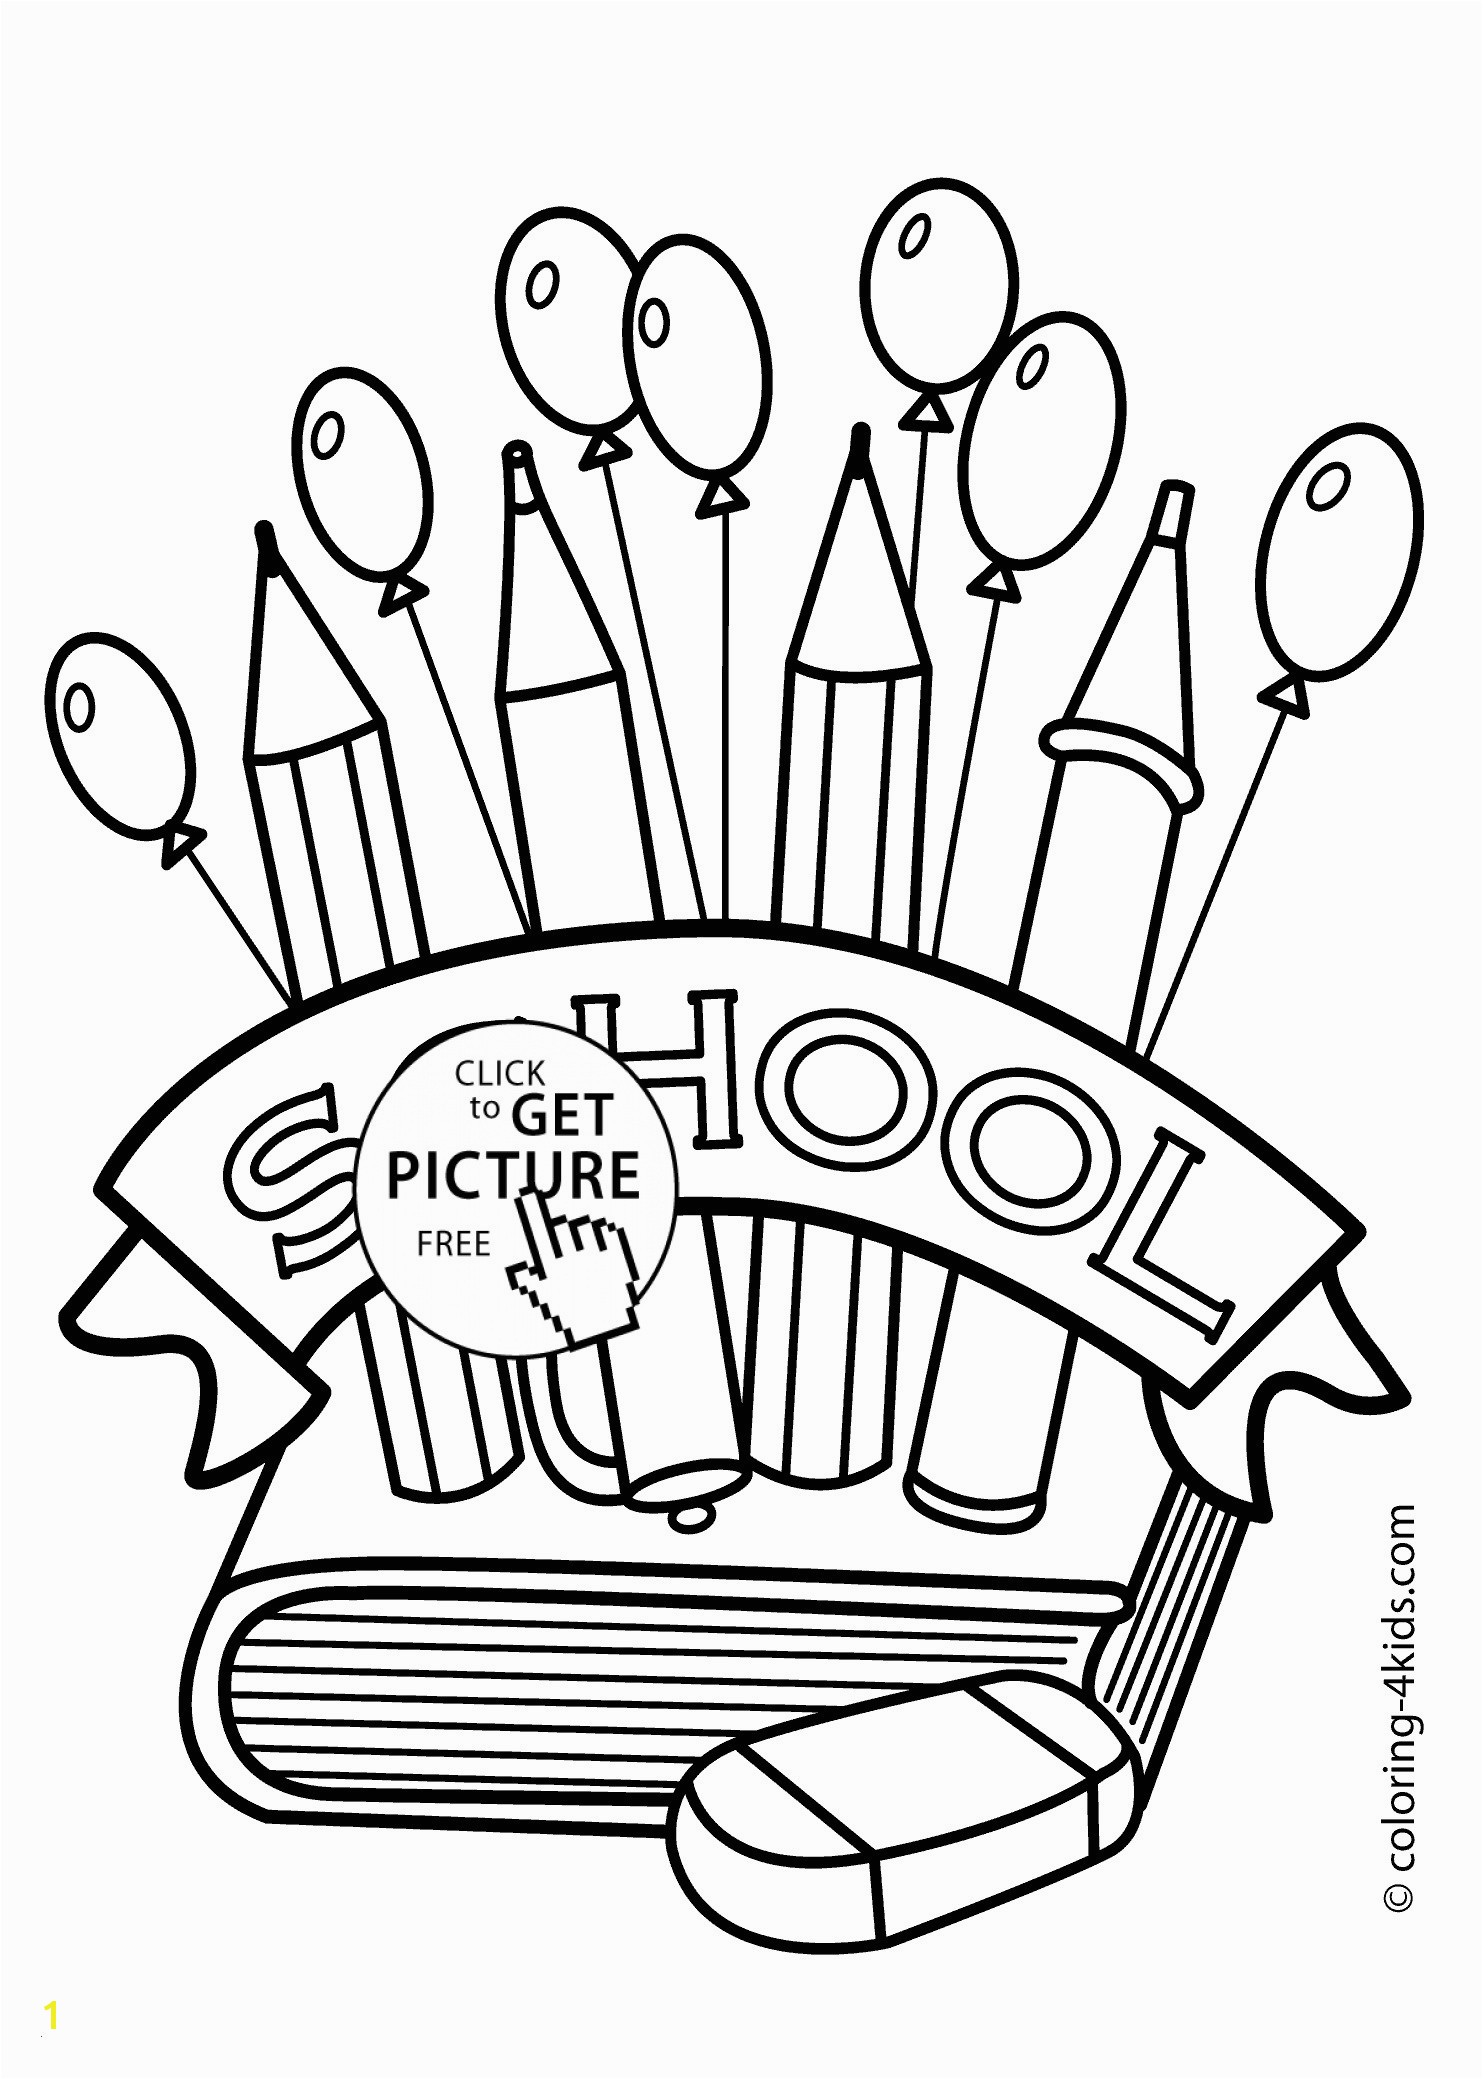 School Supplies Coloring Pages Printables Best Lovable First Day School Coloring Pages for Kindergarten Pics